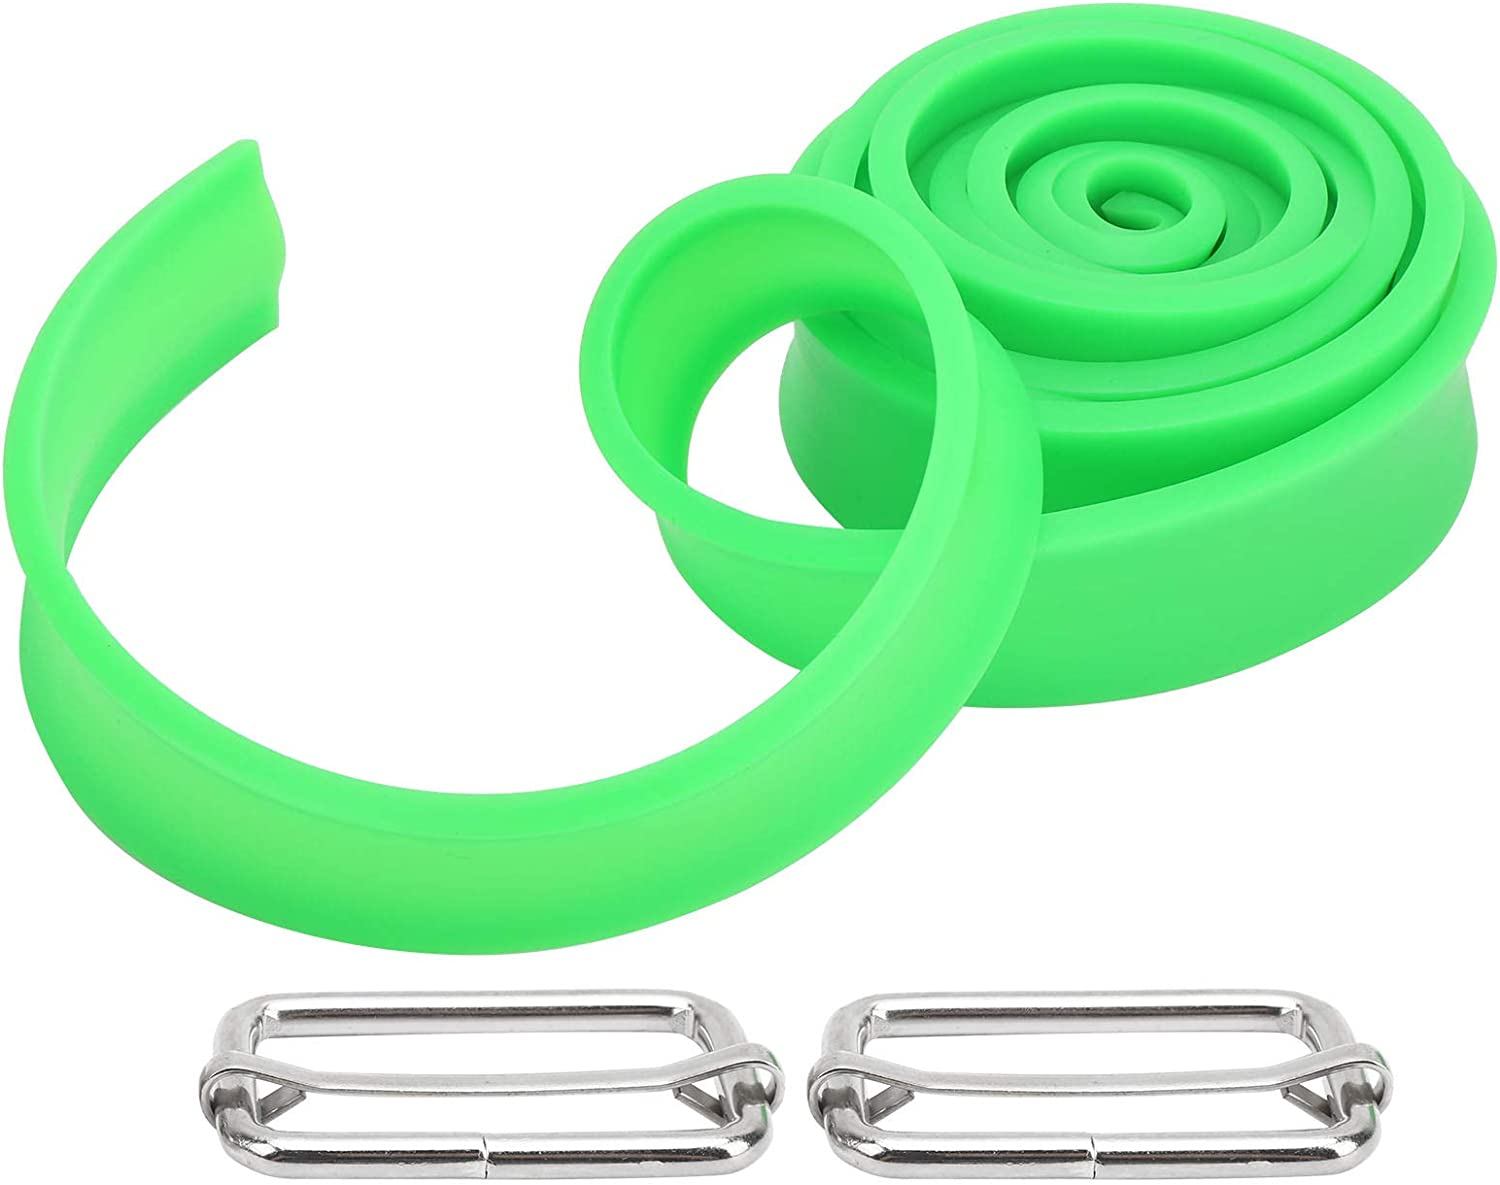 Astibym Resistance Bands Green Rubber Pull Phoenix Mall up Heavy Austin Mall B